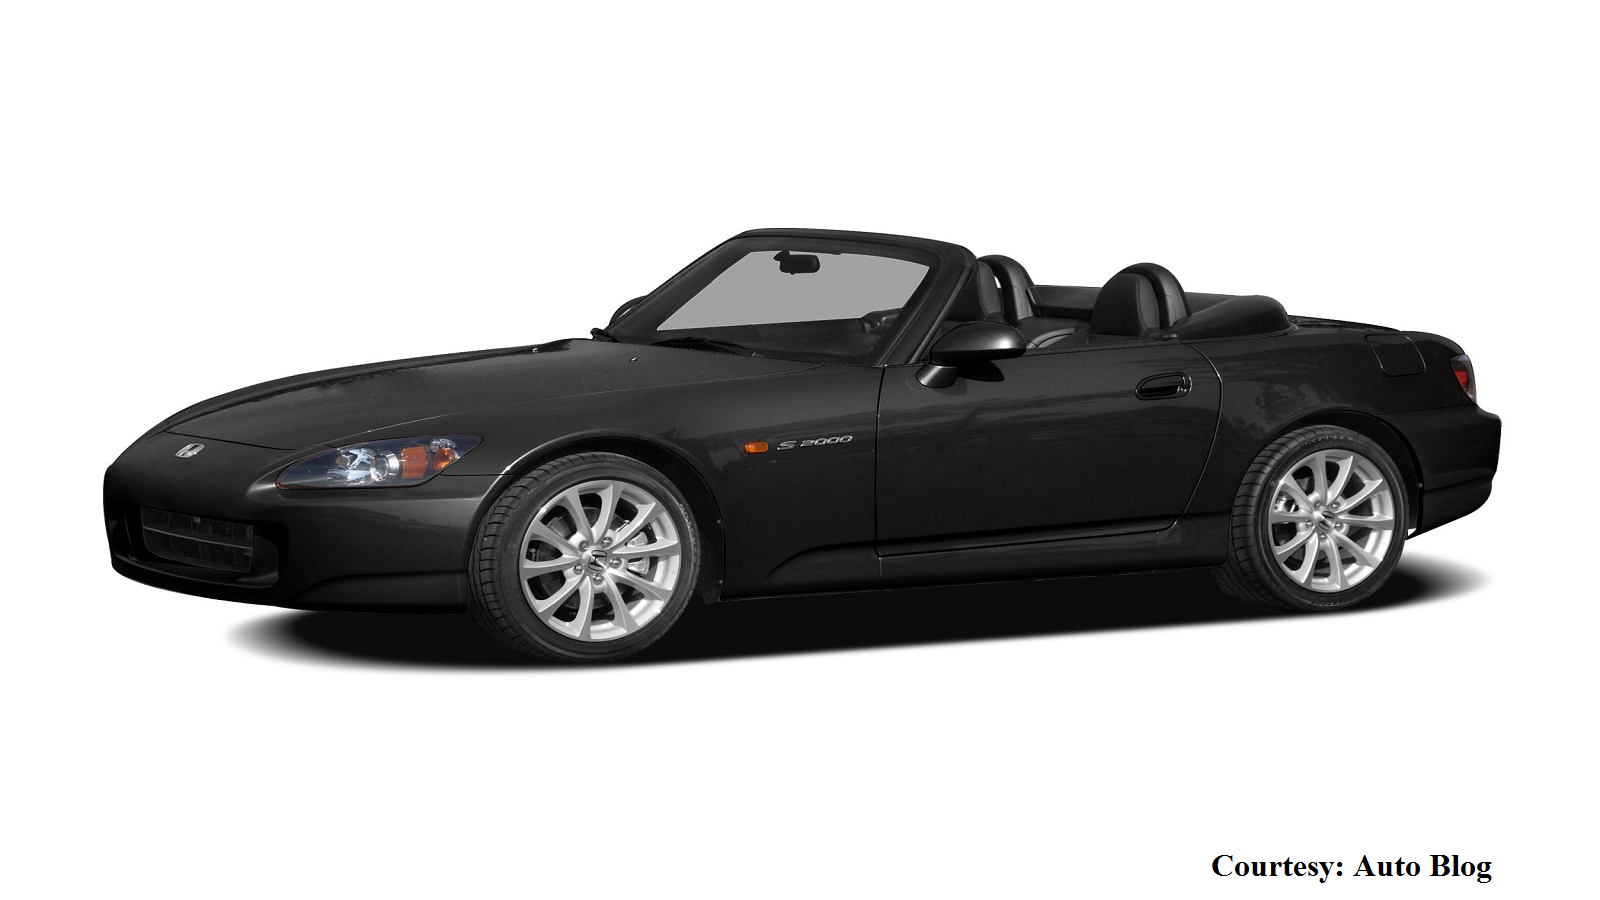 The new car is potentially intended as a successor to the S2000